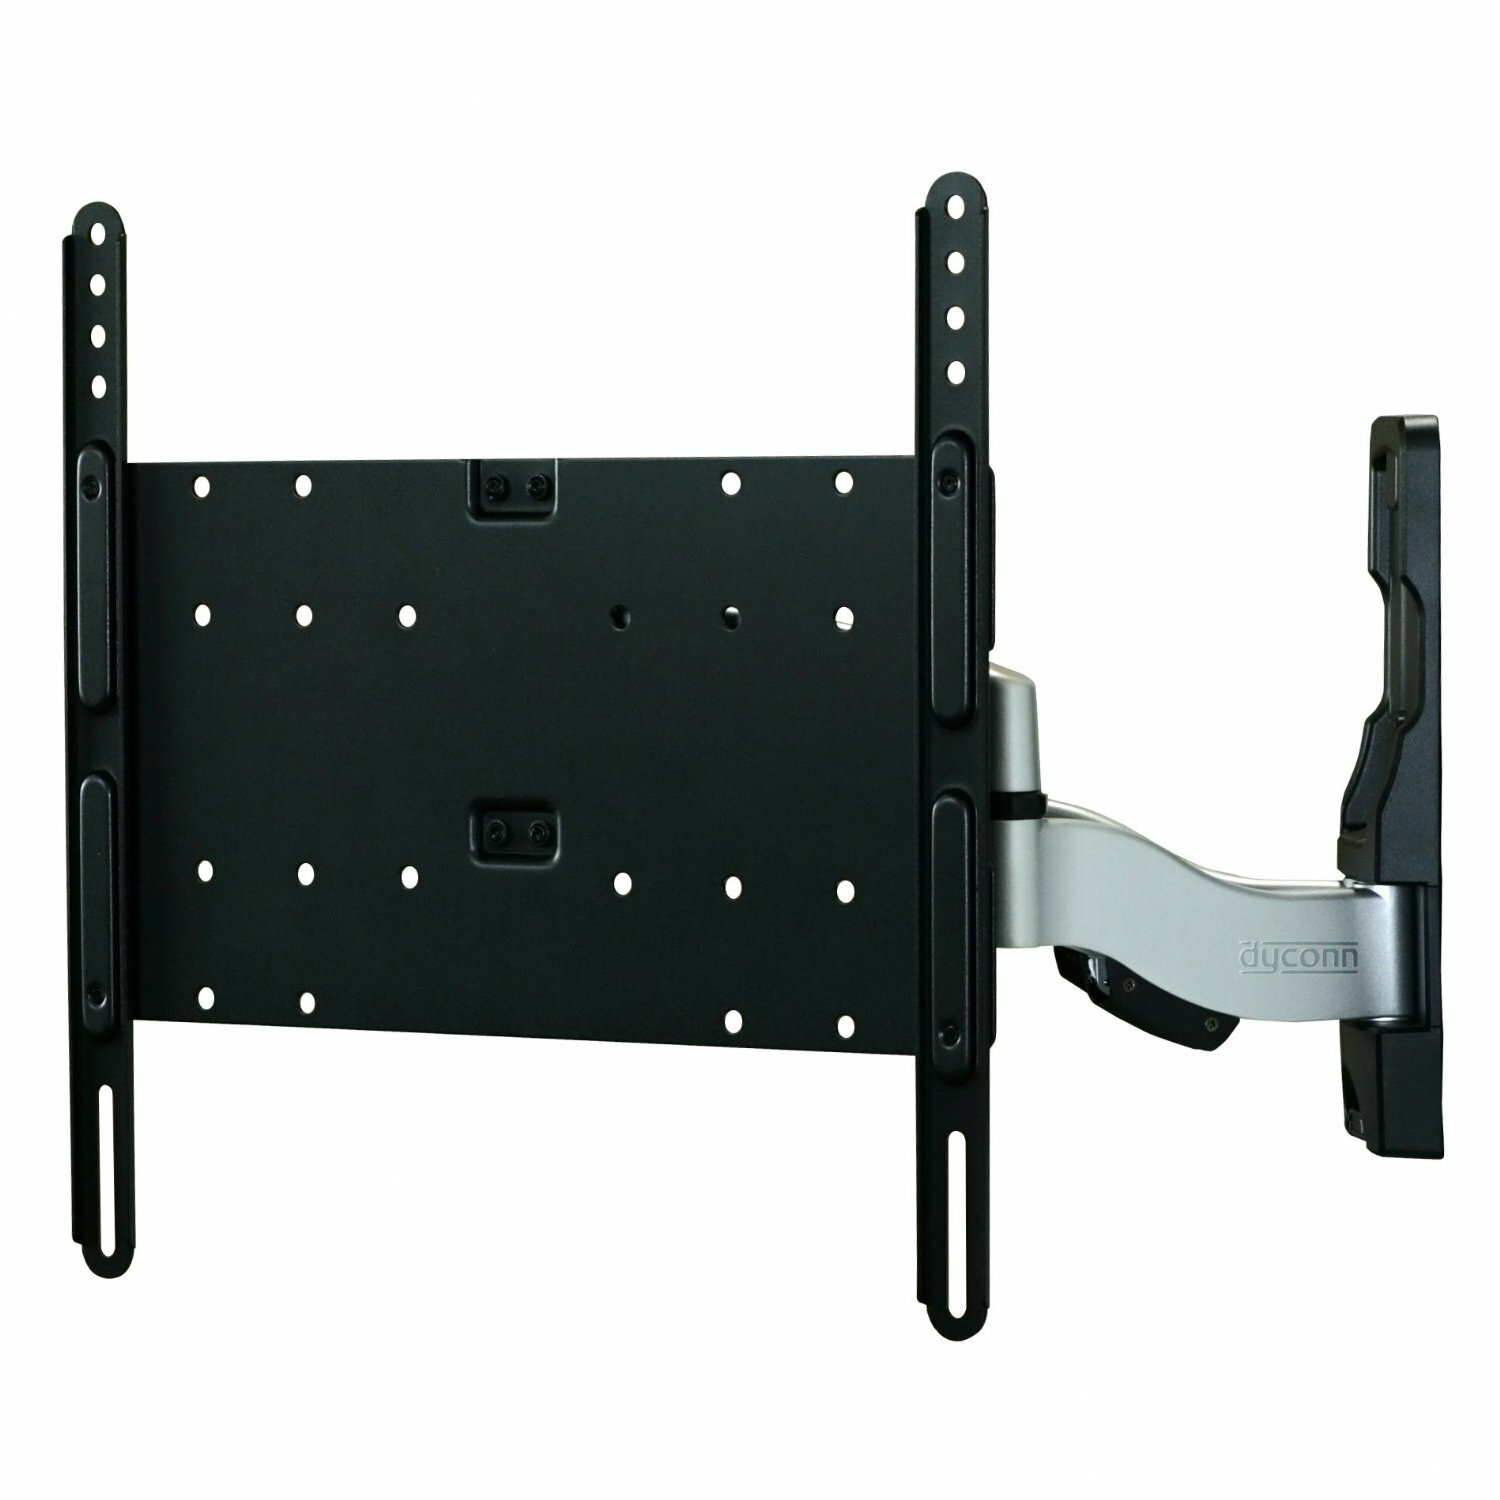 Dyconn invisible xl ultra slim articulating arm tilt swivel wall mount